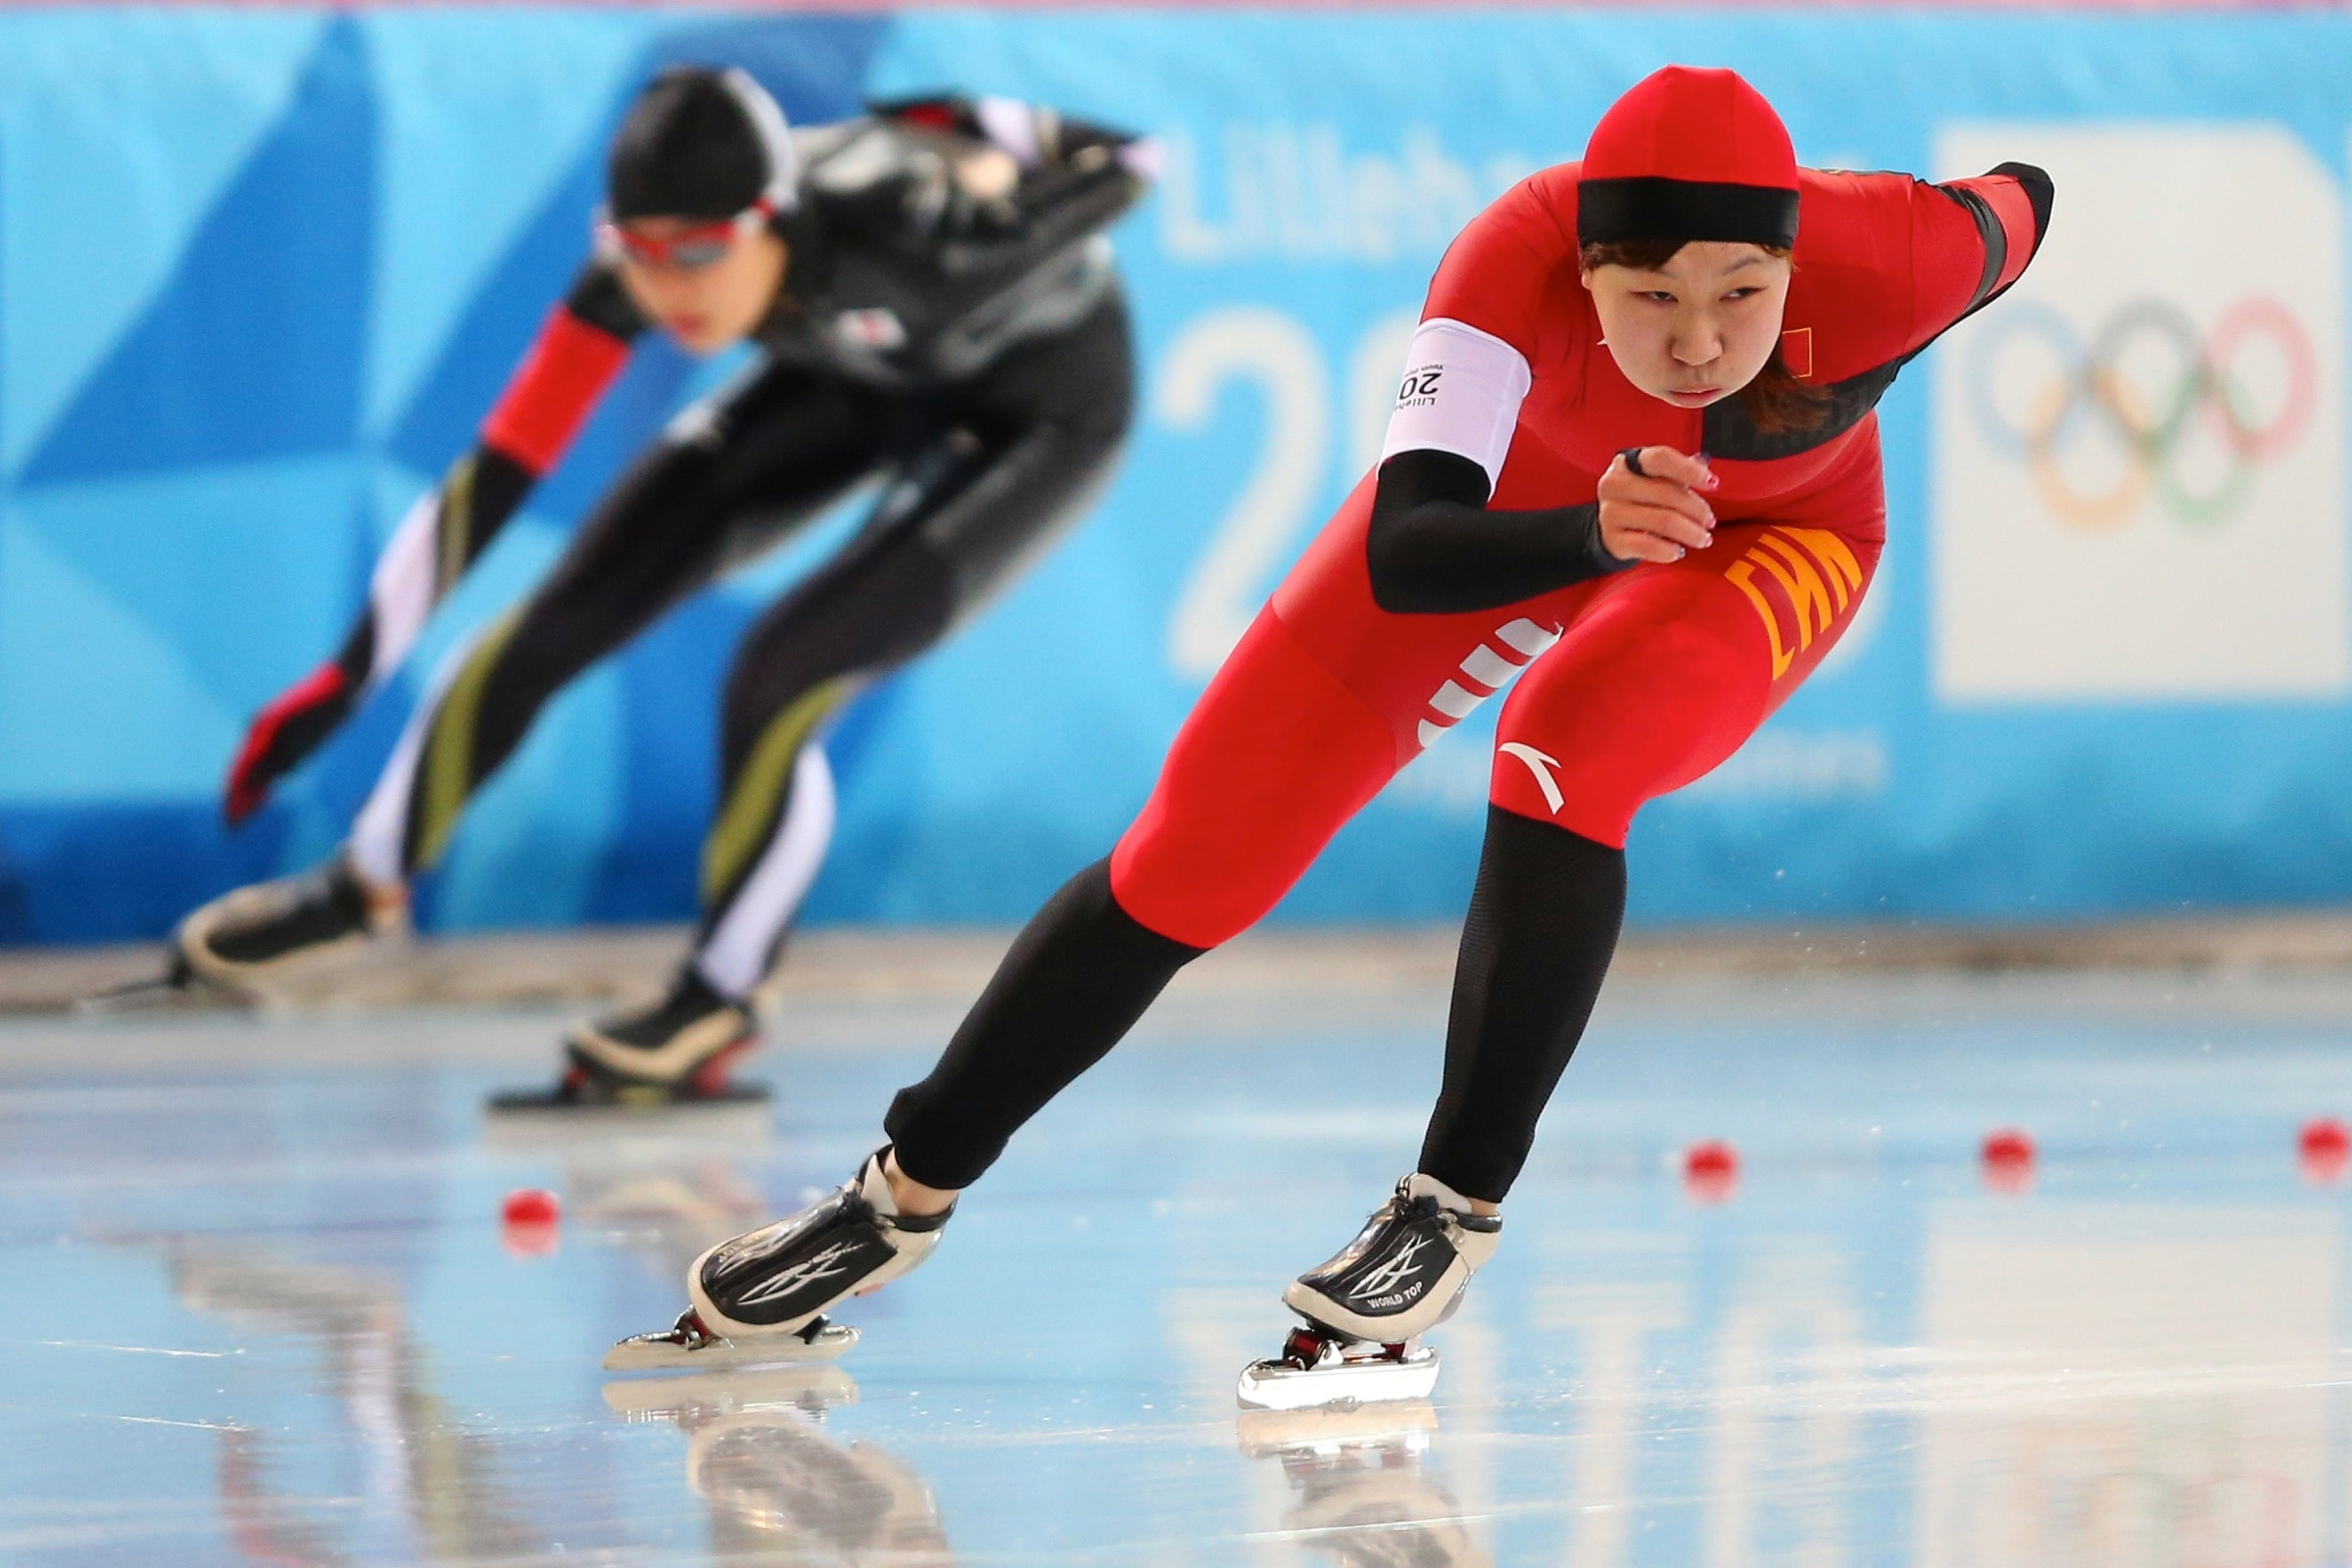 Patinage de vitesse - 500m dames